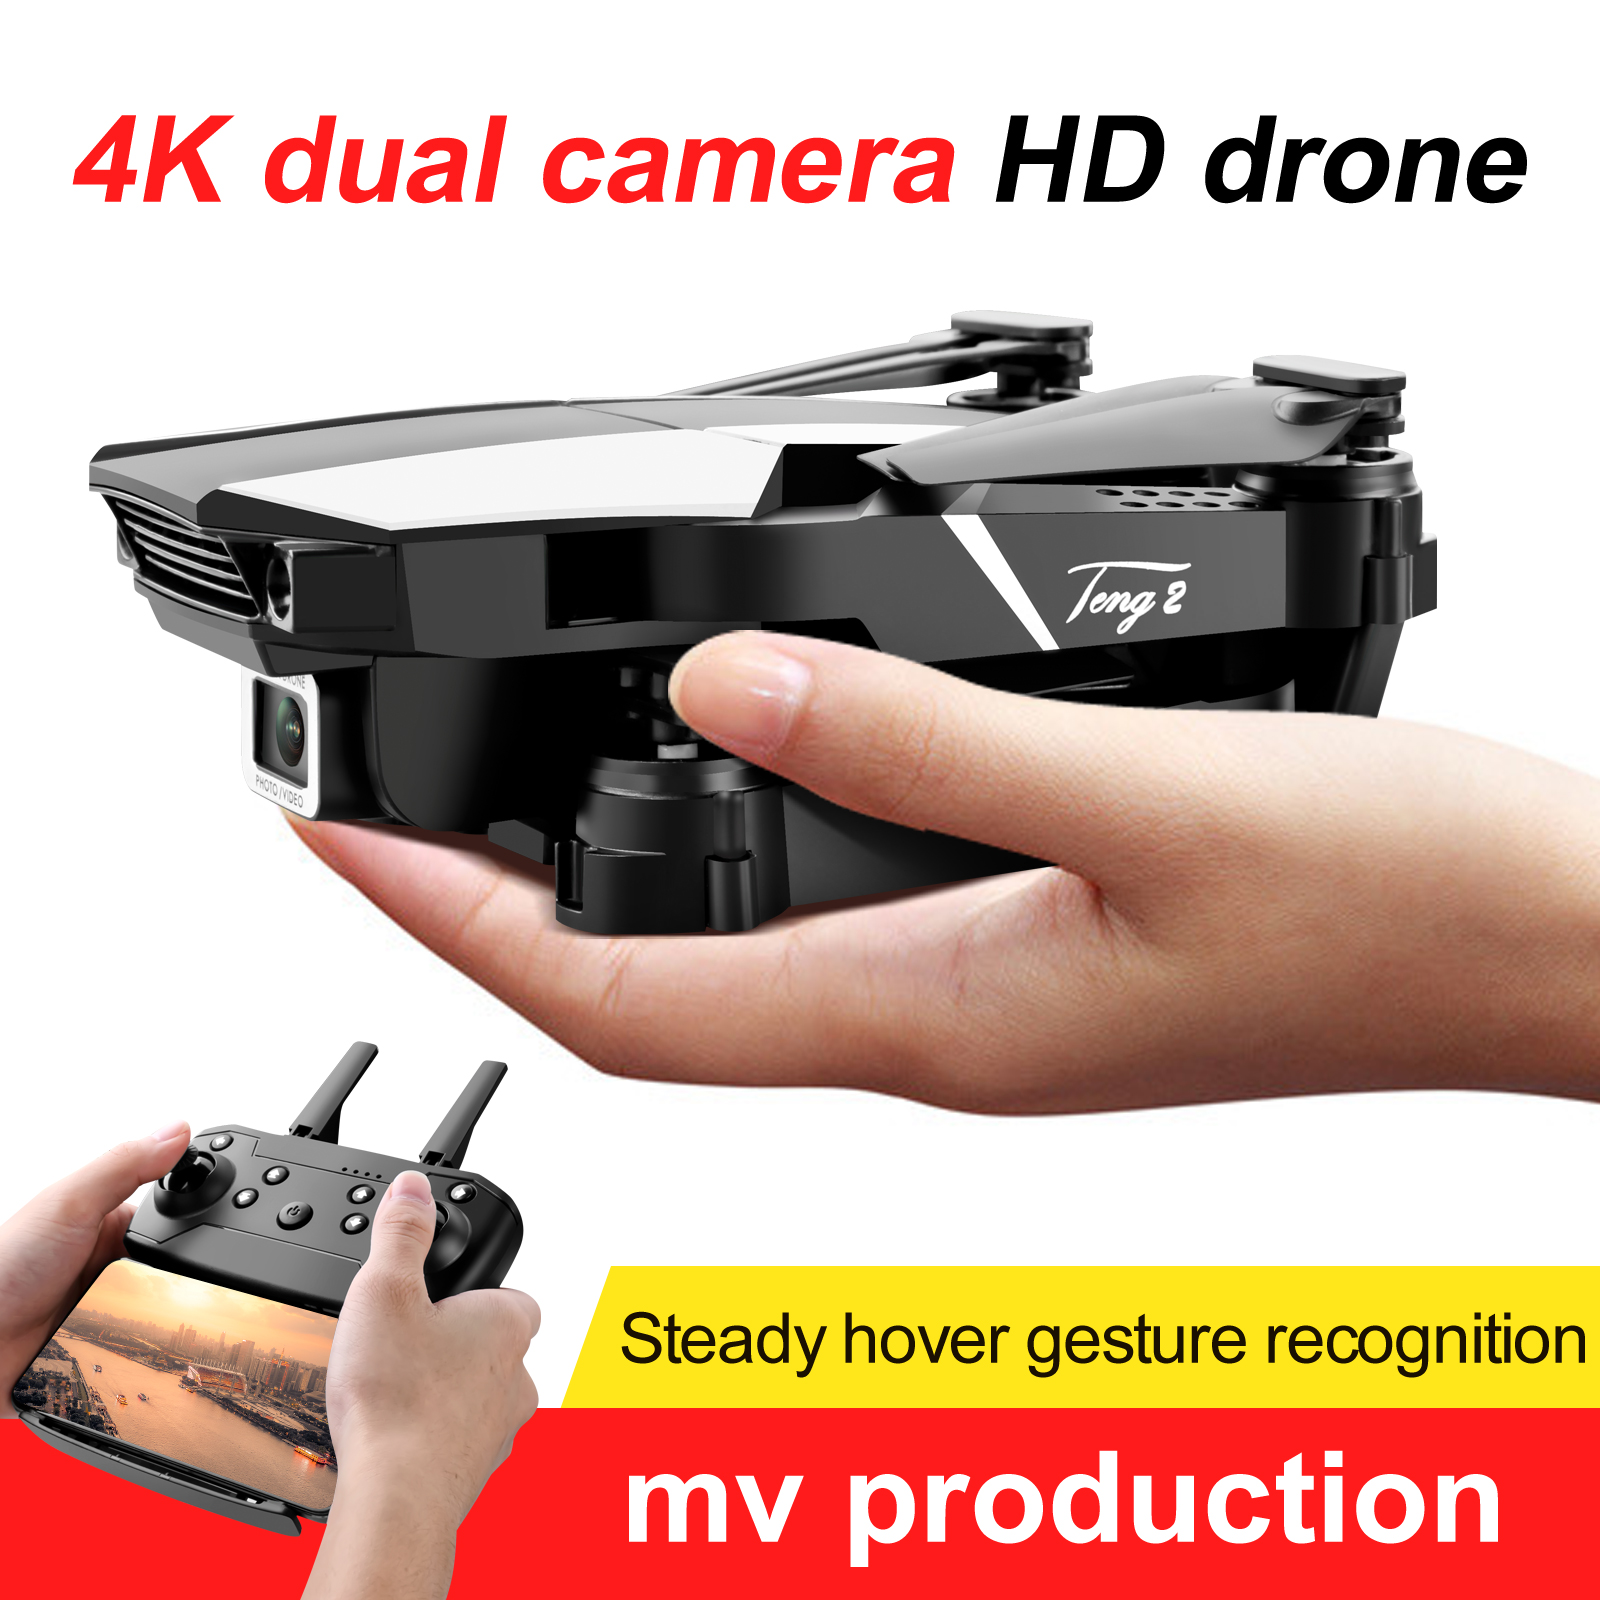 New S62 Rc Drone 4k HD Wide Angle Camera 1080P WiFi fpv Drone Dual Camera Quadcopter Real-time transmission Helicopter Toys